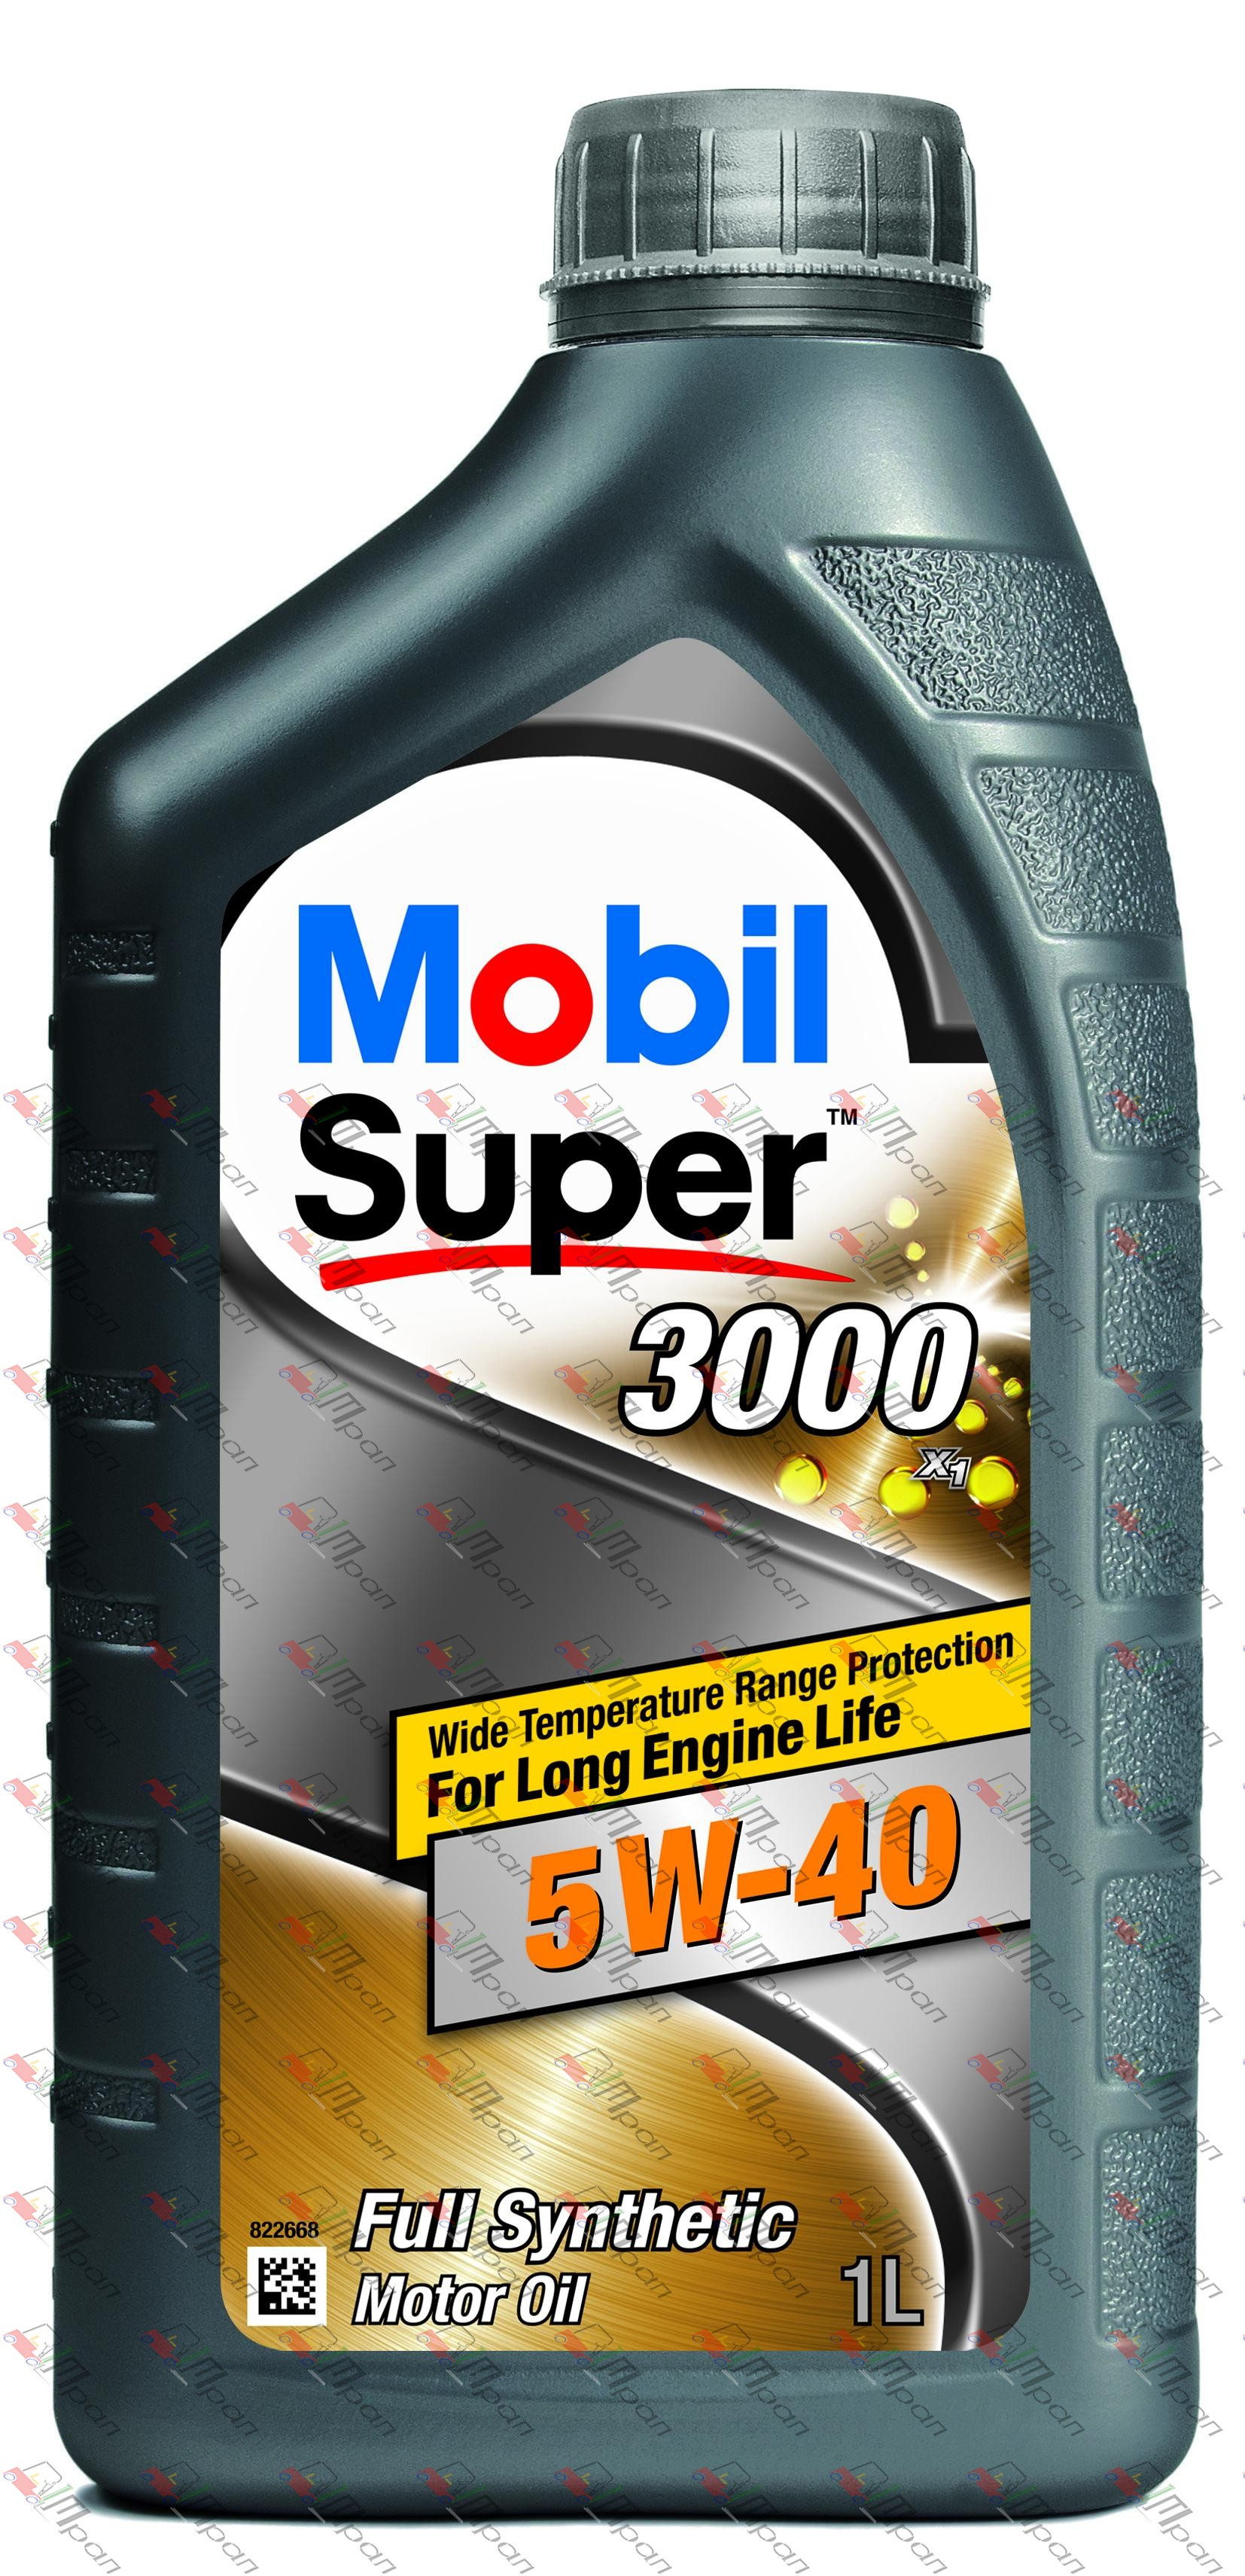 Mobil Масло моторное синтетич. Mobil Super 3000  5w40 1л